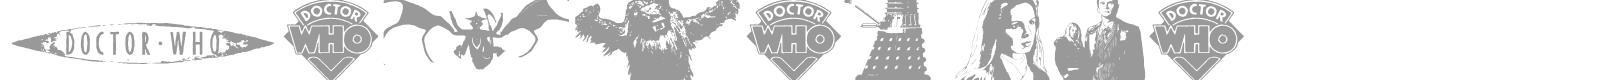 Font Doctor Who 2006